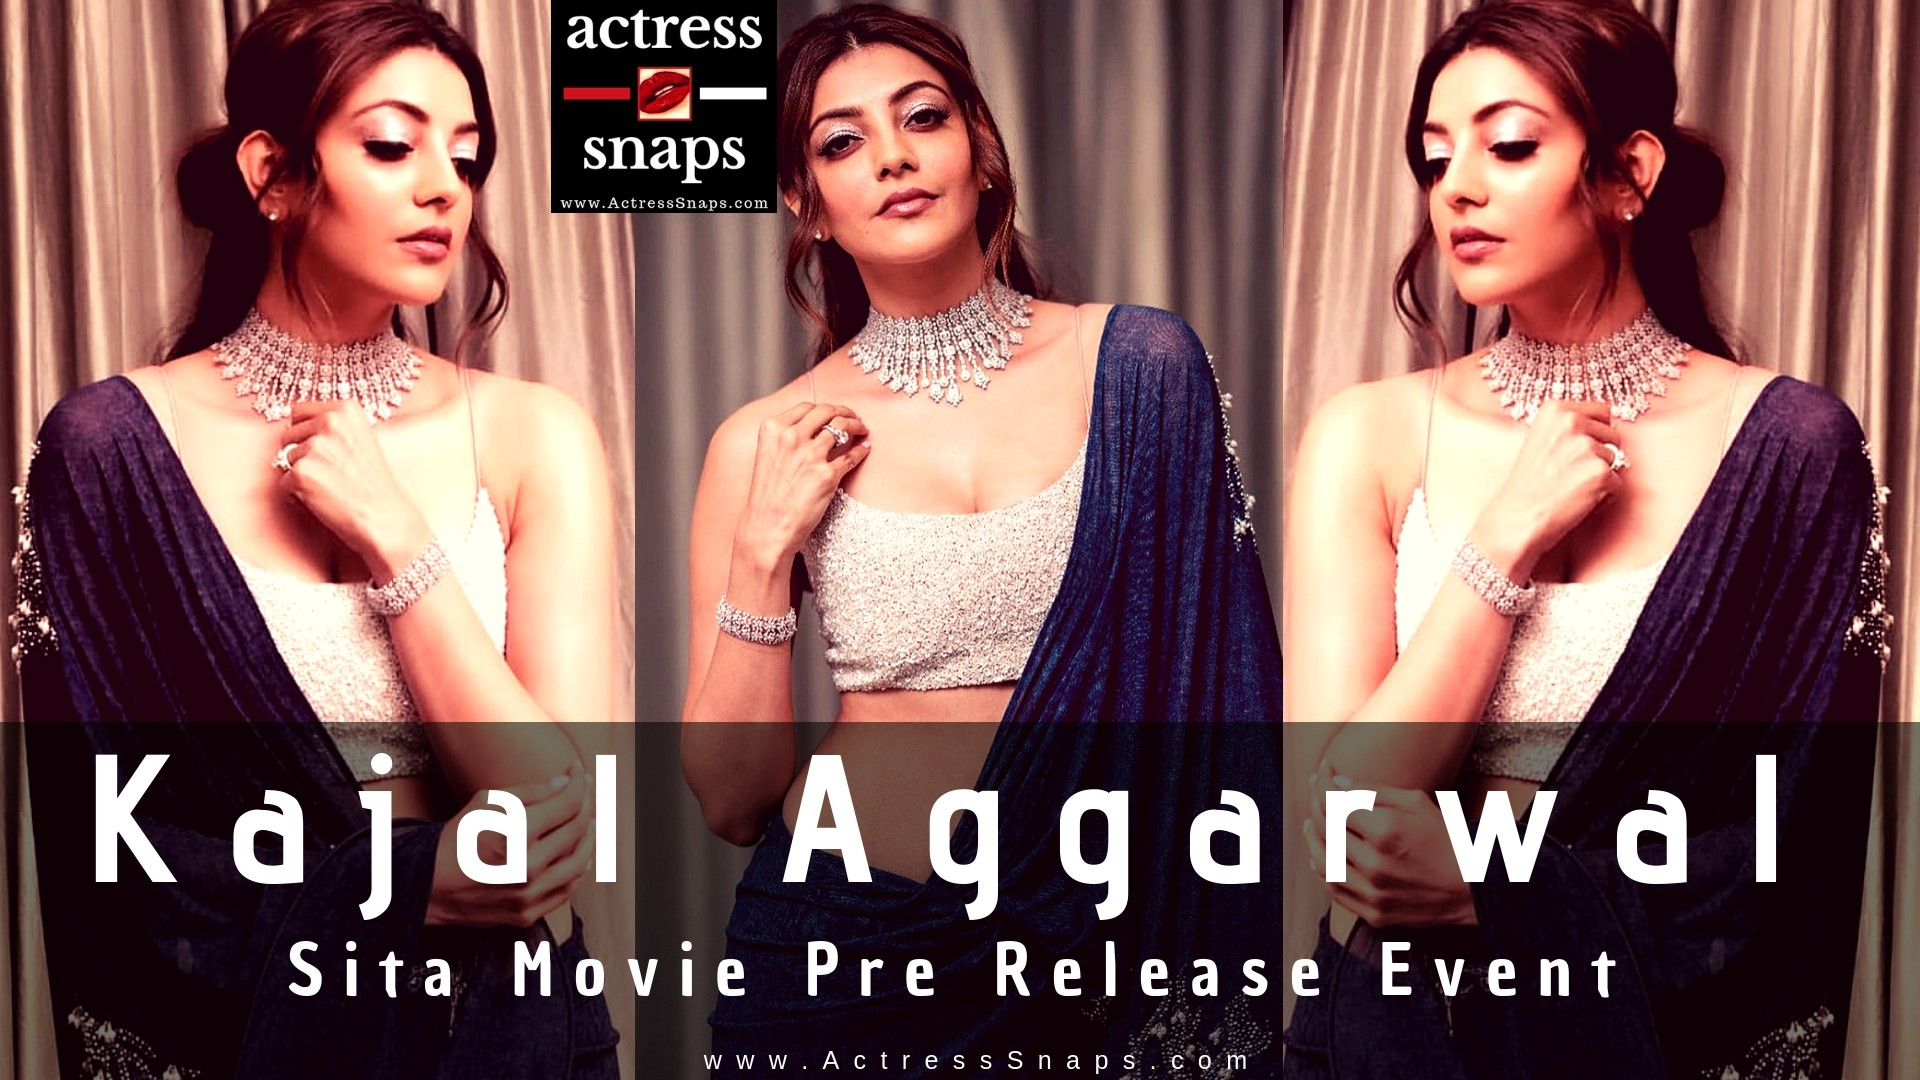 Sexy Kajal Agarway at Movie Event - Sexy Actress Pictures | Hot Actress Pictures - ActressSnaps.com